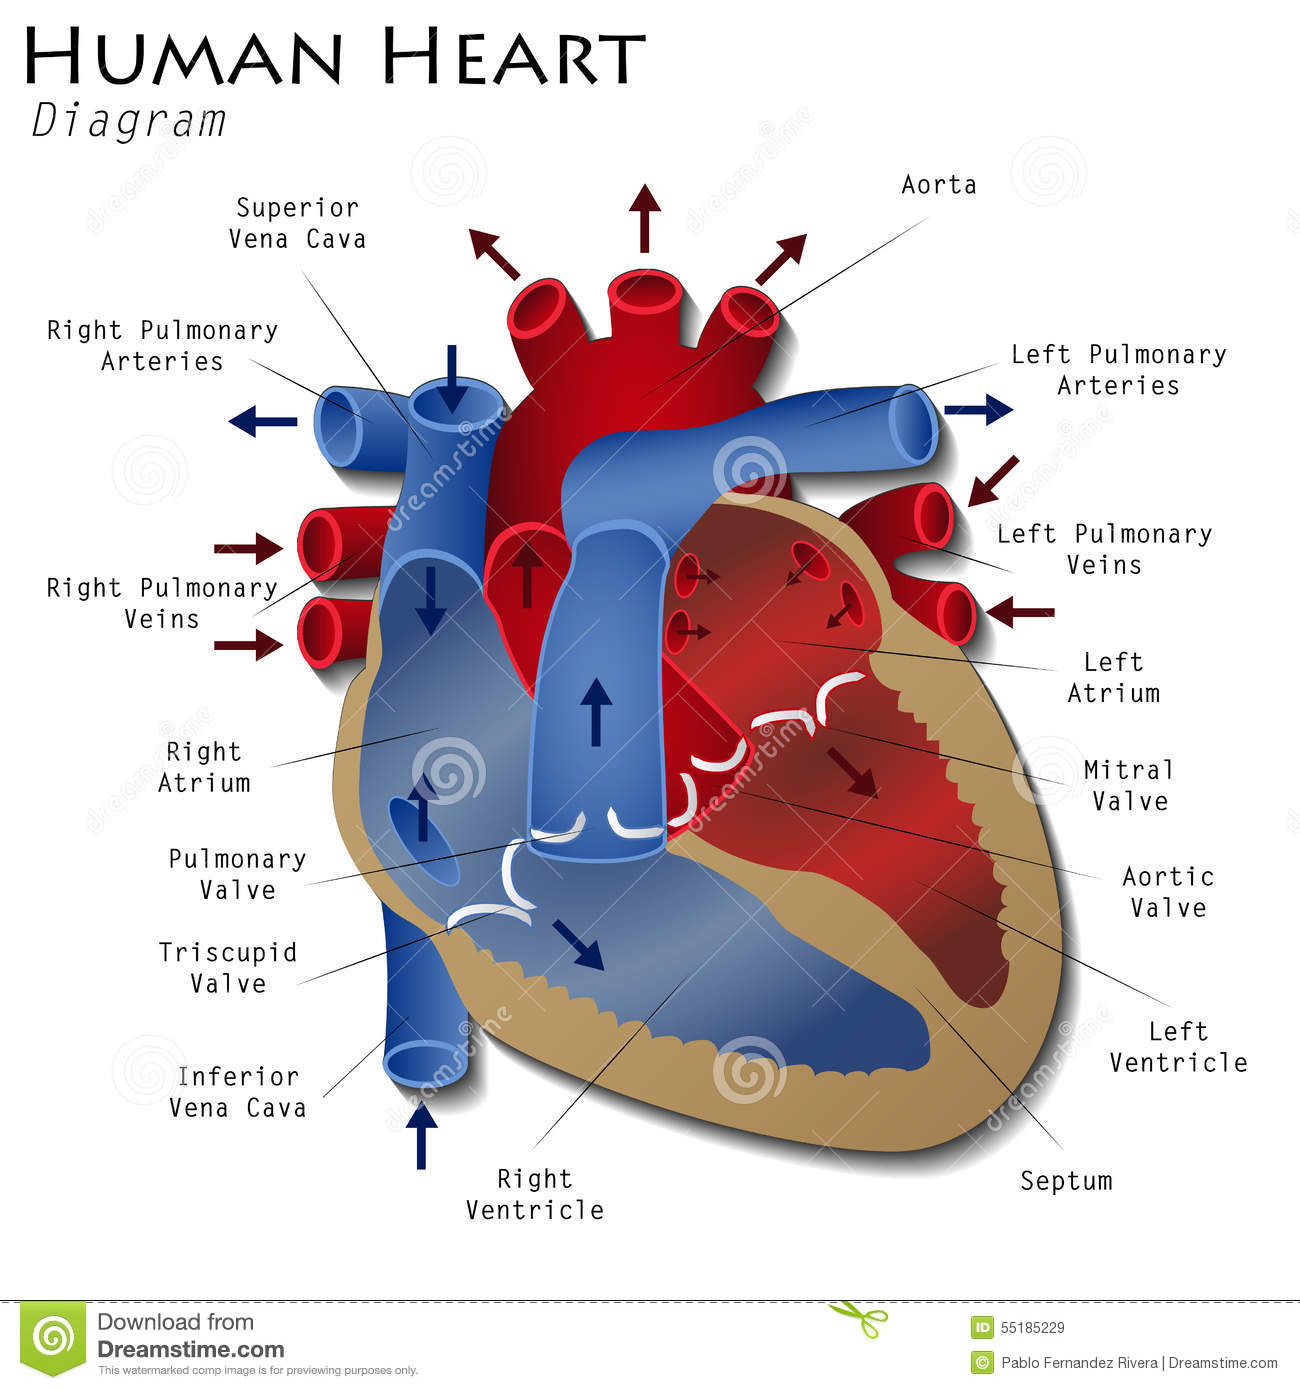 Human heart diagram stock illustration illustration of science download human heart diagram stock illustration illustration of science 55185229 ccuart Images